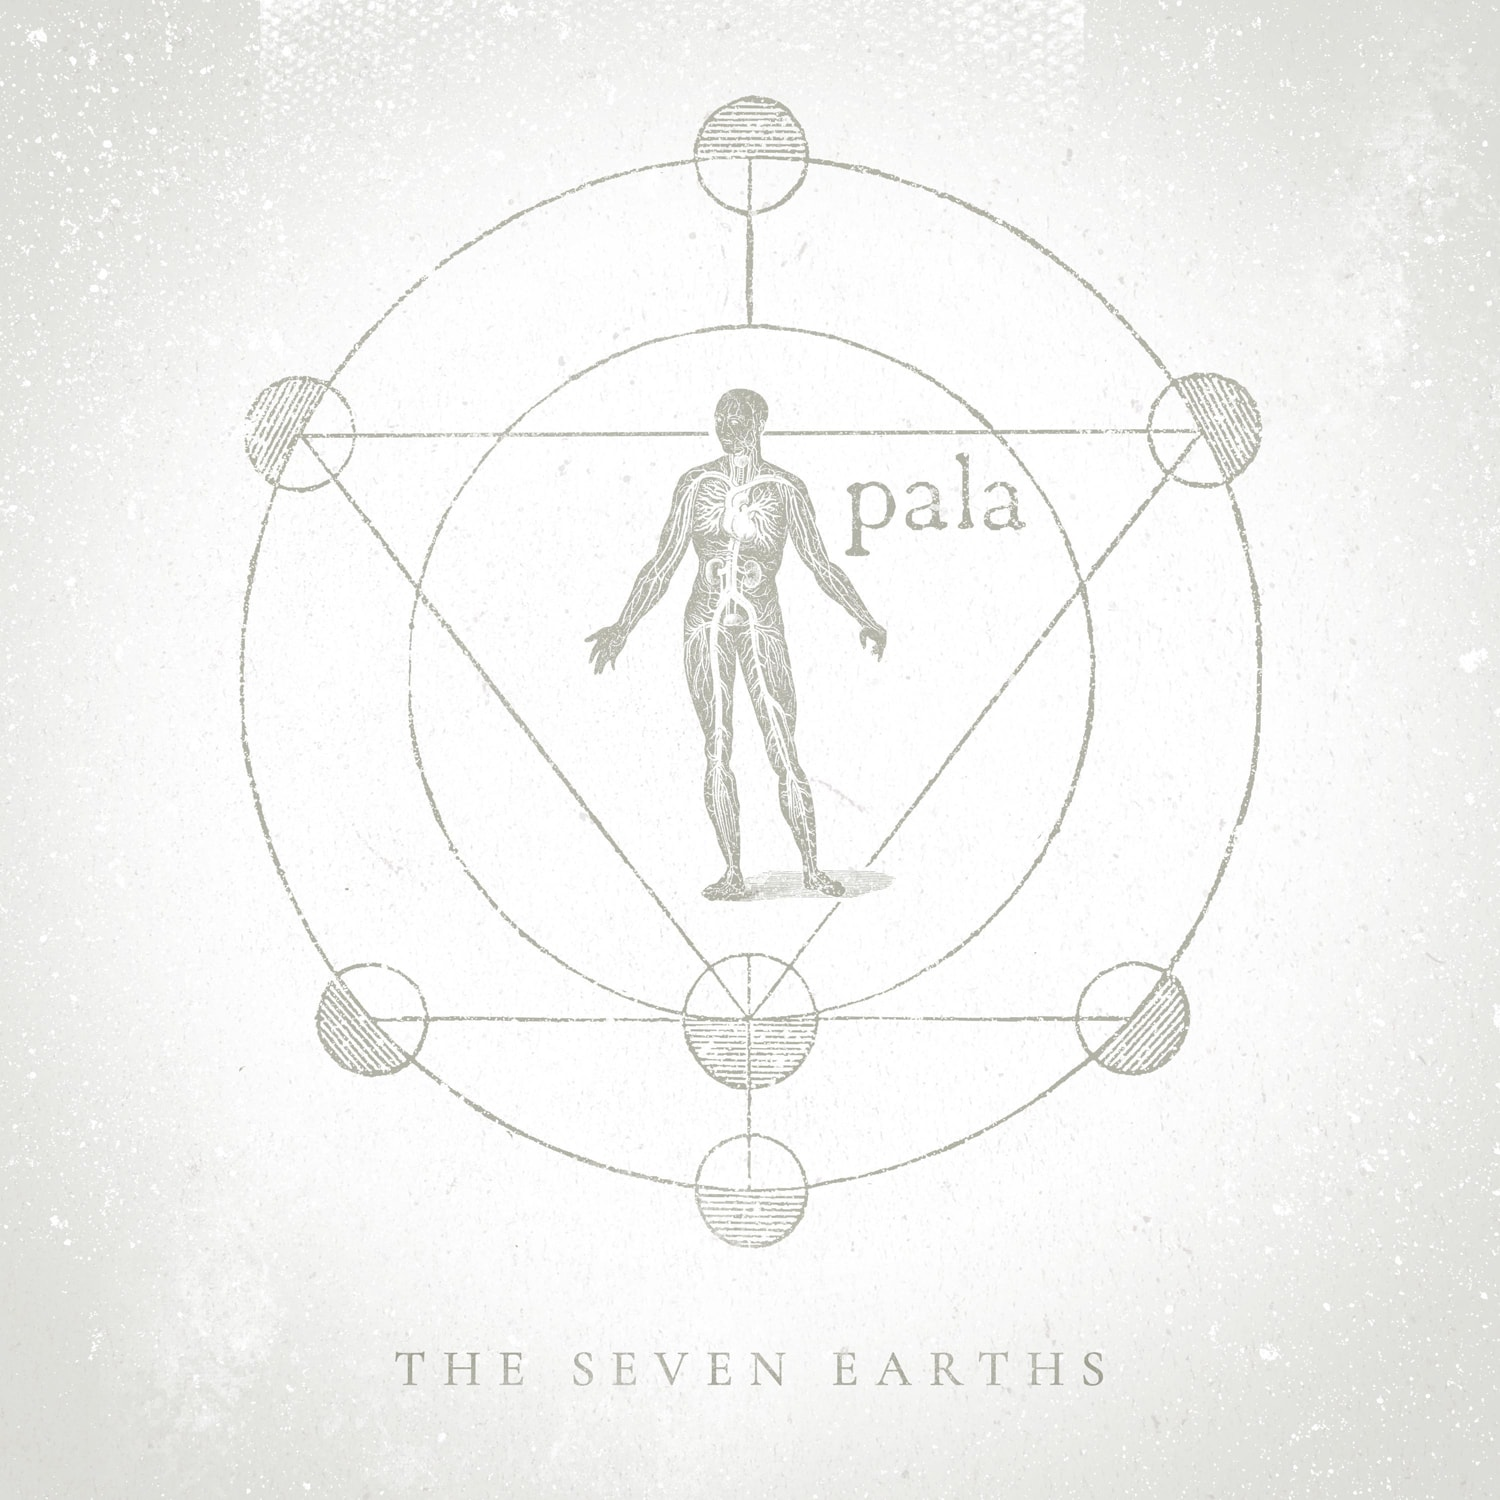 The Seven Earth's EP album art